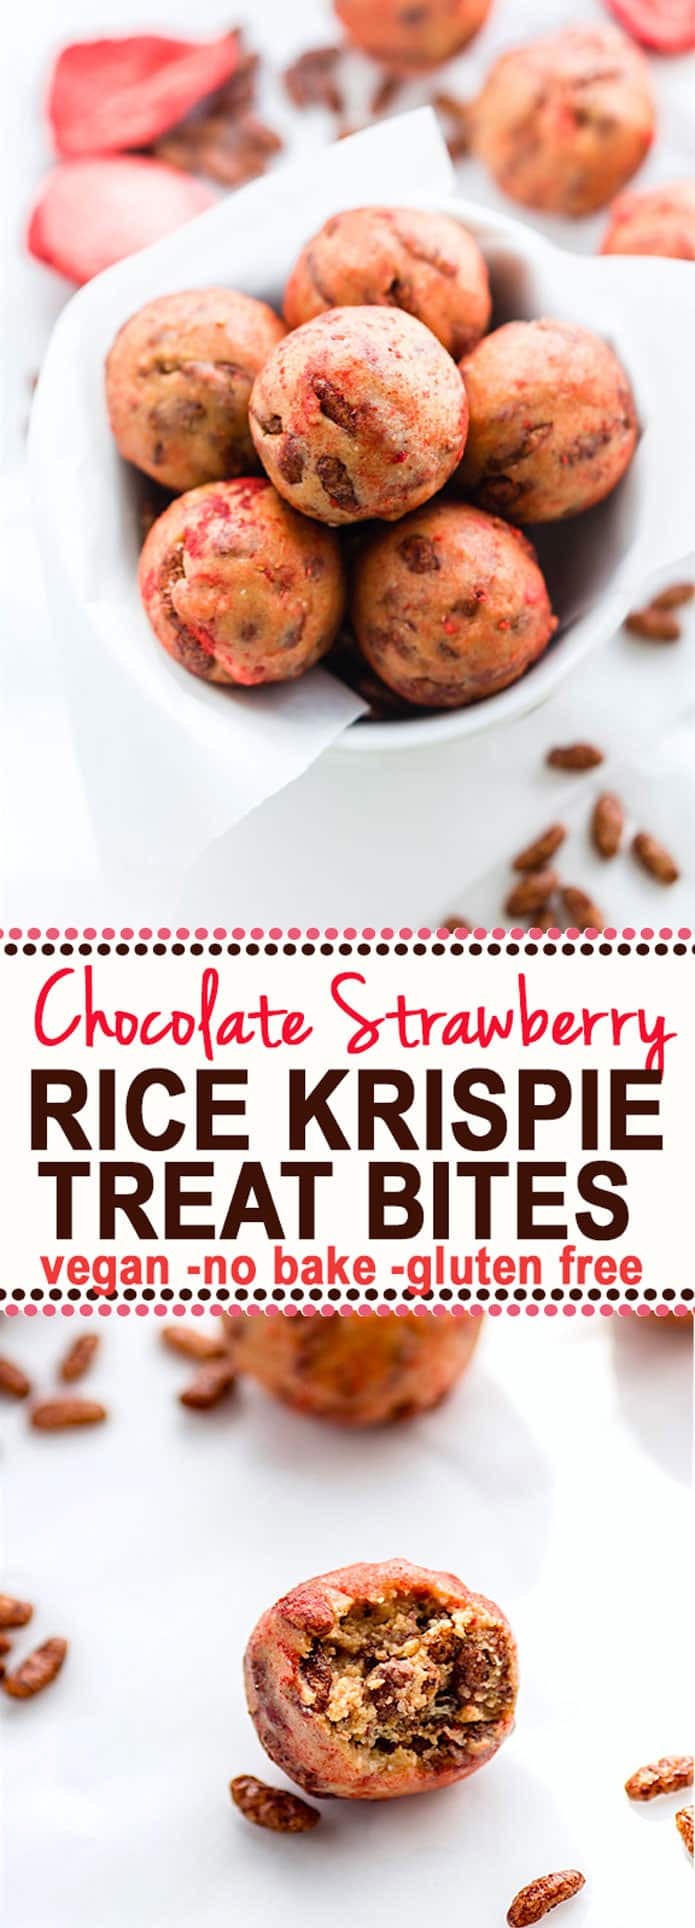 Super Tasty Chocolate Strawberry NO BAKE rice Krispie Treats BITES! Vegan Gluten Free Rice Krispie treats in BITE form and actually healthy for you. Easy to make and a great snack or breakfast bite for kids and adults! @cottercrunch